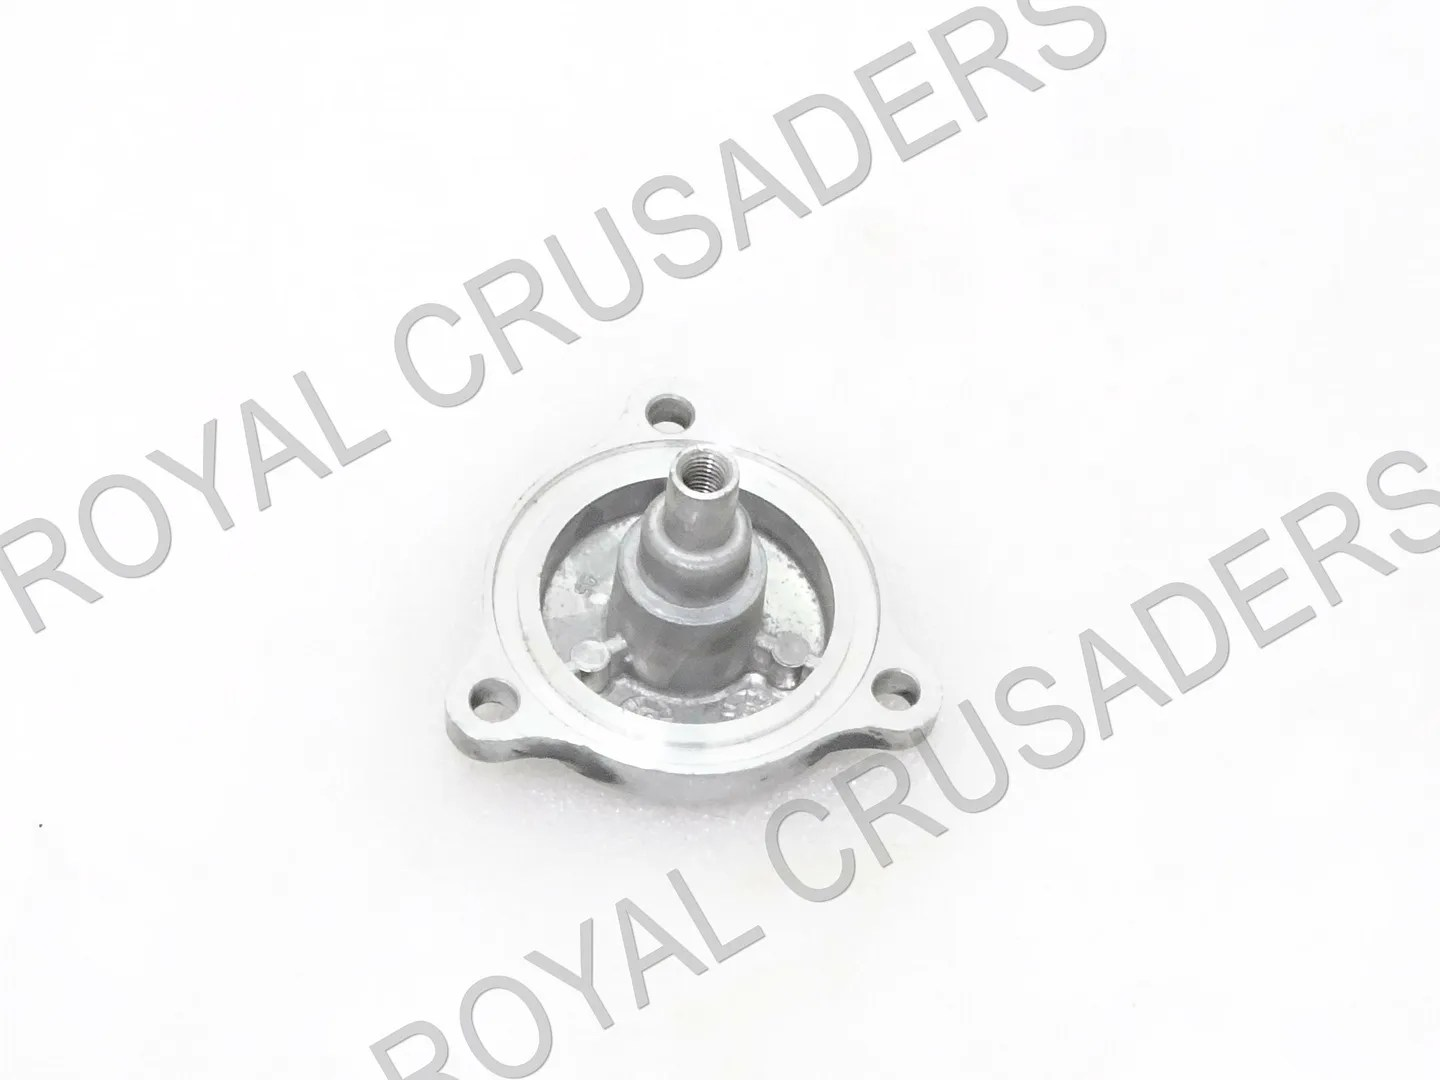 New Royal Enfield Uce 350 Amp 500cc Oil Filter Cap Re122